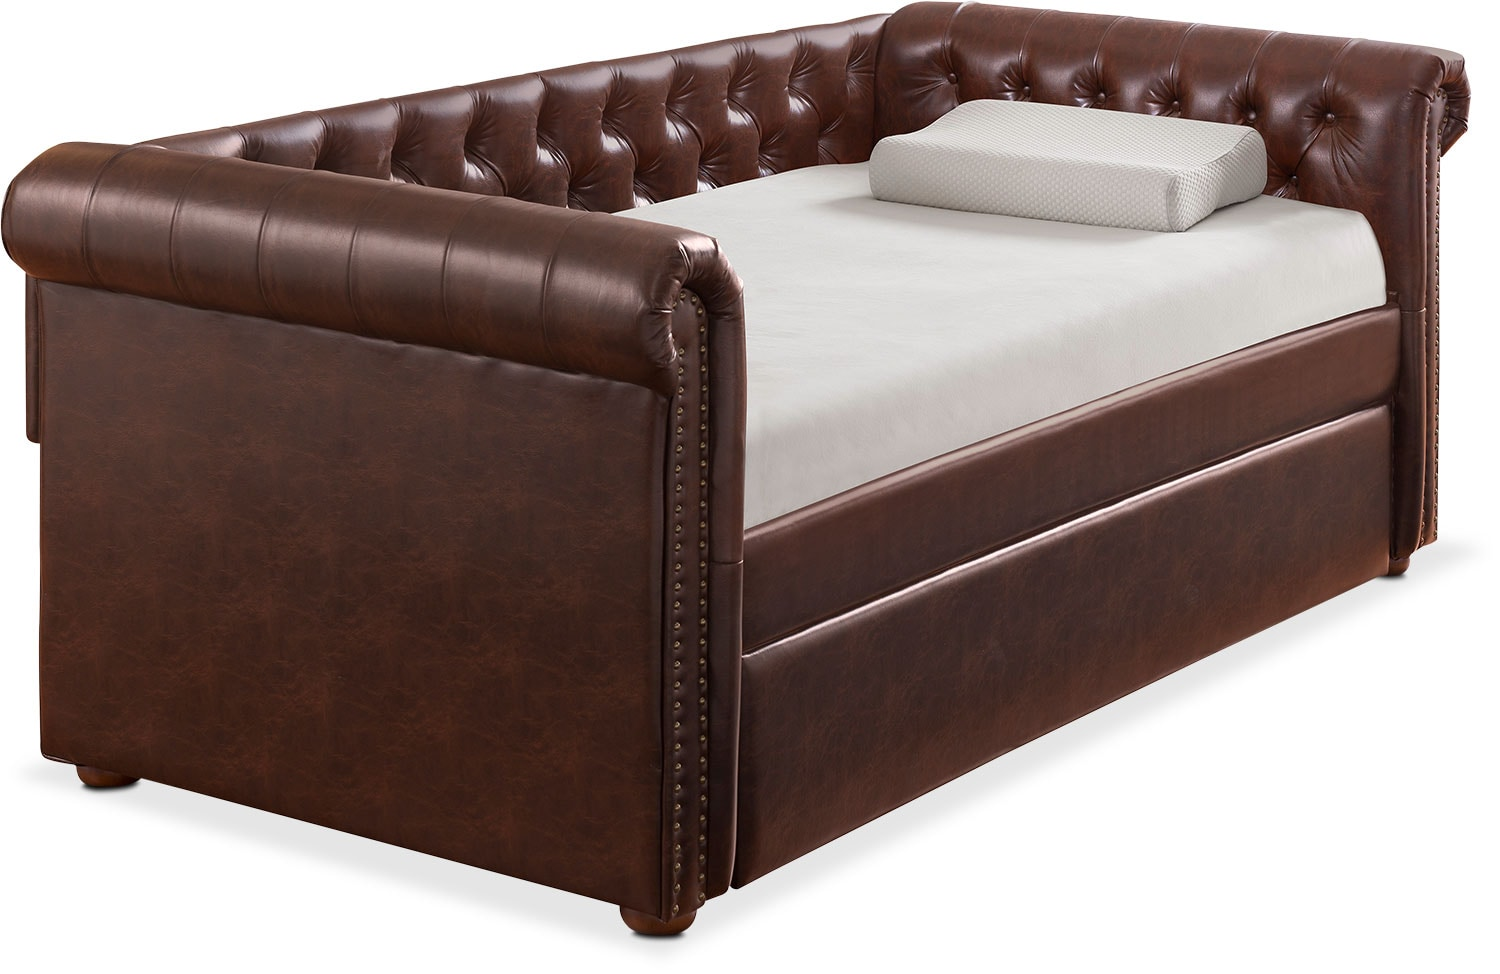 Shelton Twin Upholstered Daybed With Trundle   Brown